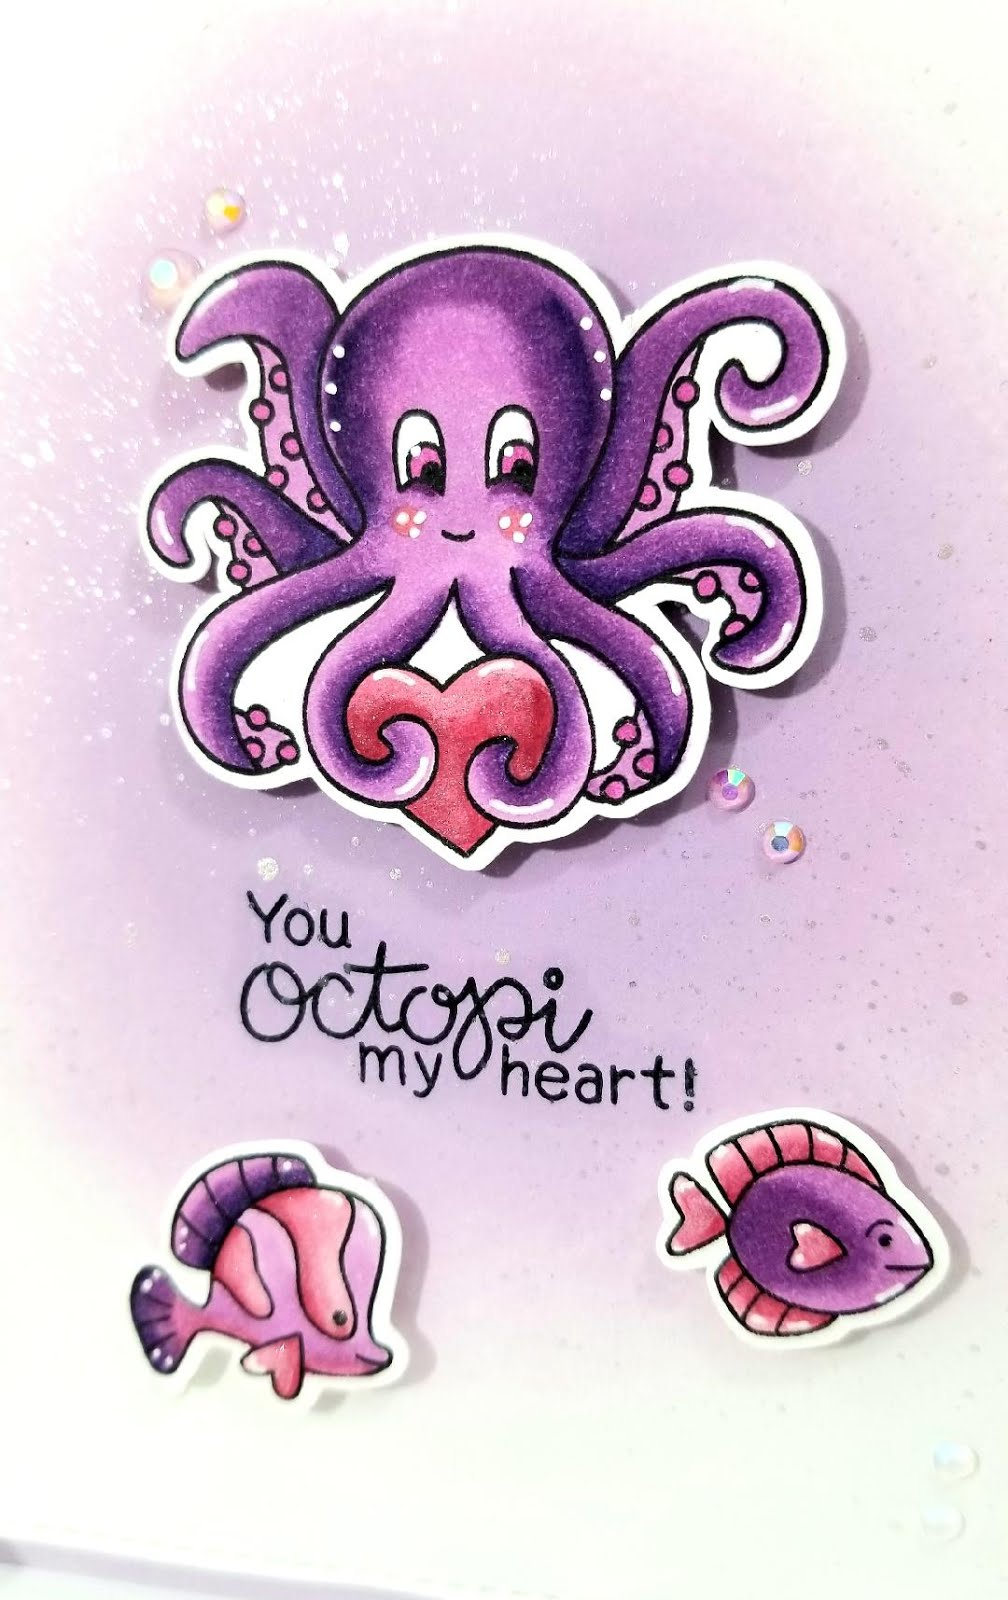 You Octopi My Heart Card by February Guest Designer Lori U'ren | Tides of Love Stamp Set by Newton's Nook Designs #newtonsnook #handmade